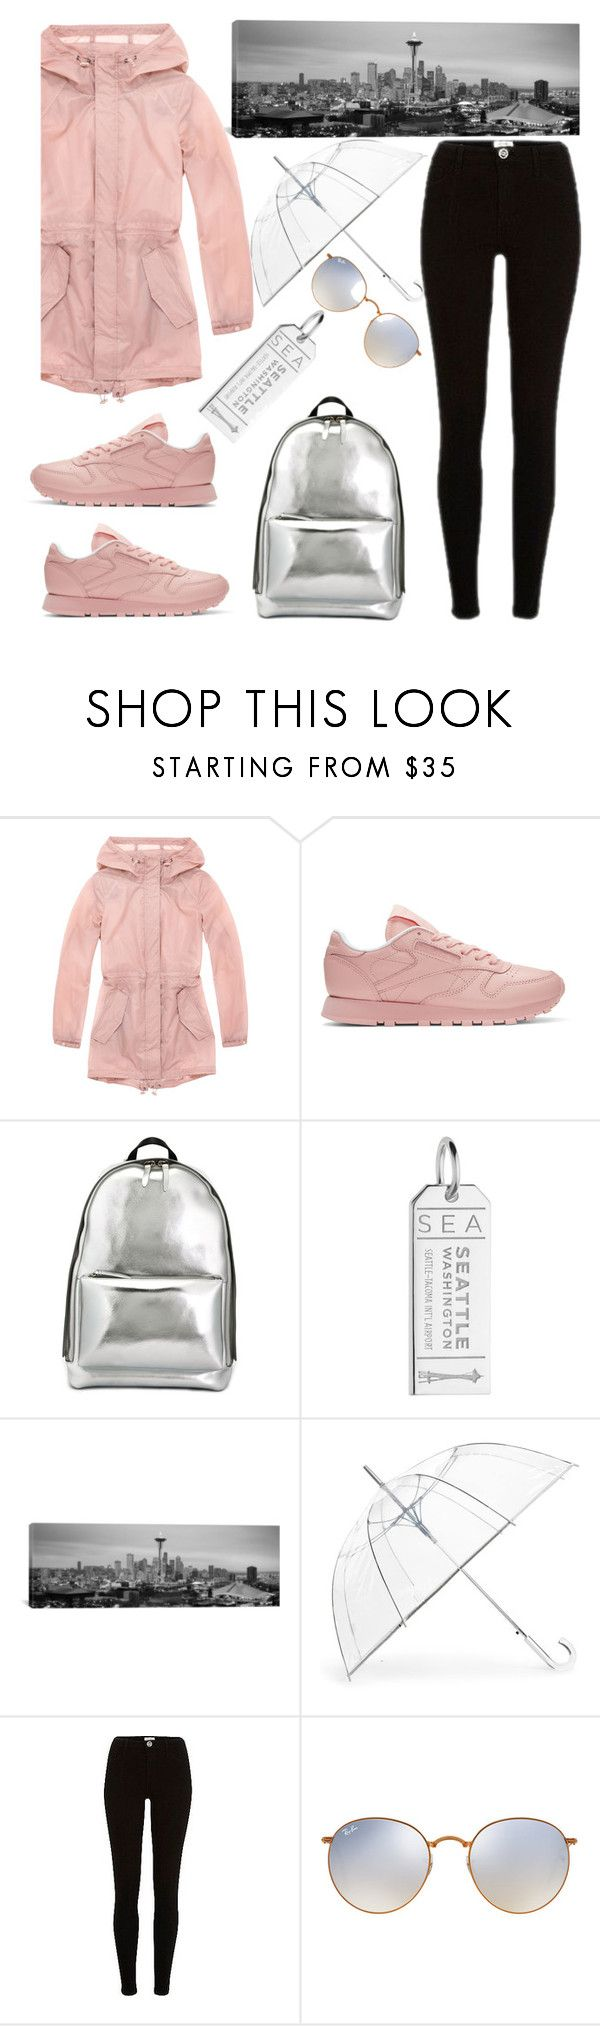 """I see you"" by felicitysparks ❤ liked on Polyvore featuring Marc New York, Reebok, 3.1 Phillip Lim, Jet Set Candy, iCanvas, ShedRain, River Island and Ray-Ban"